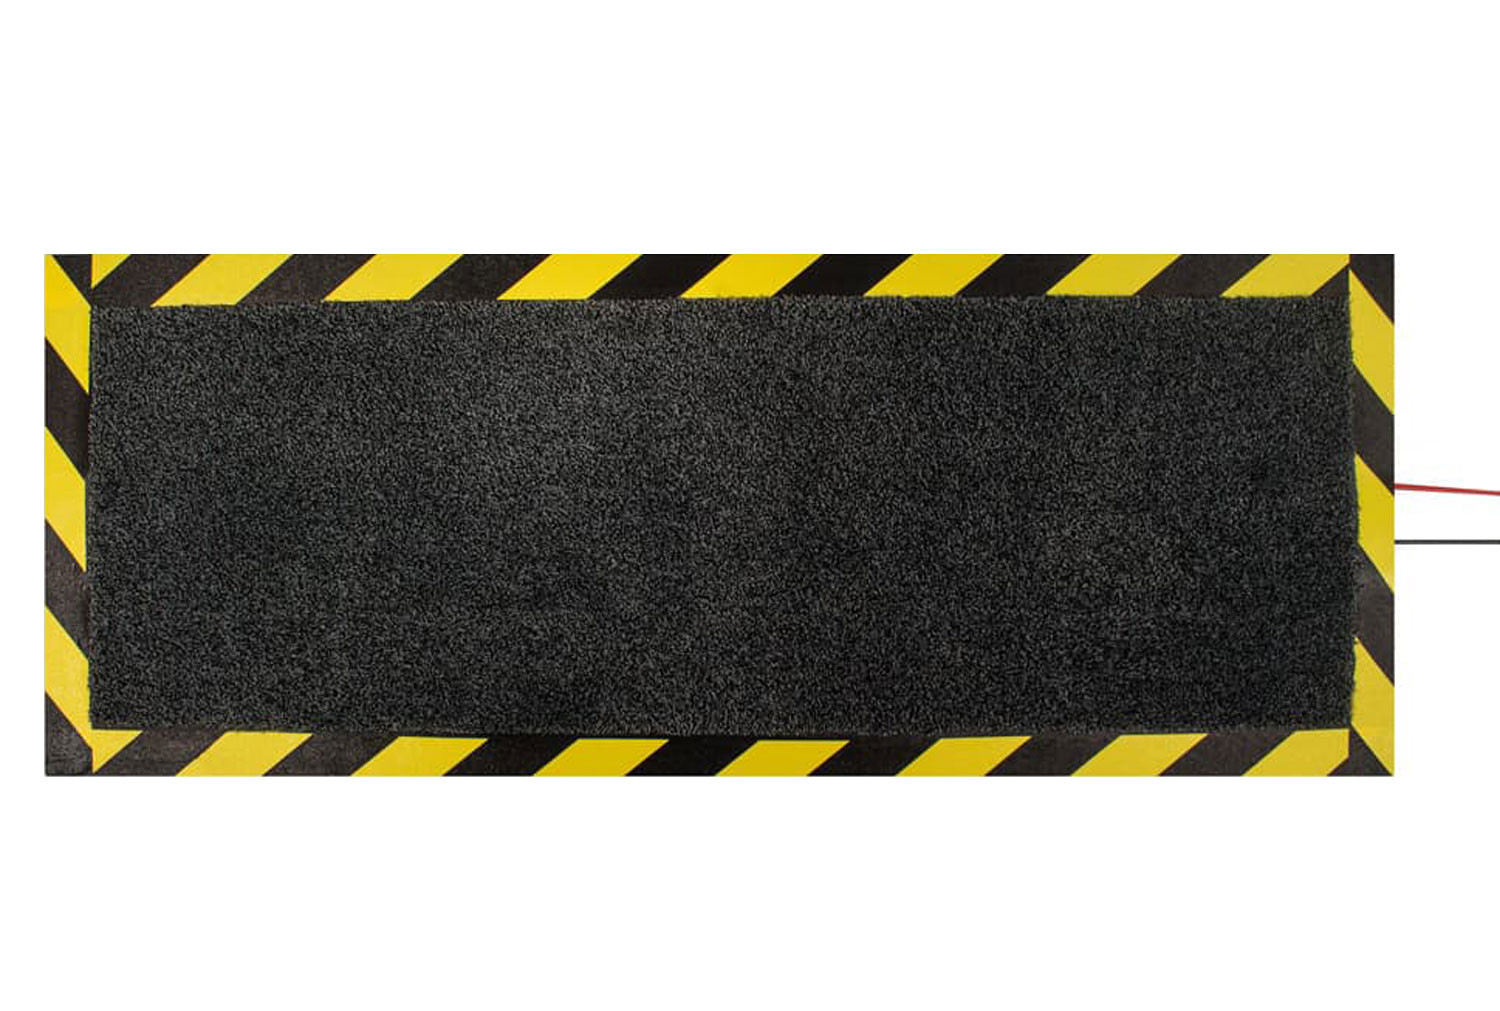 Cable Protector Mat With Hazard Stripe